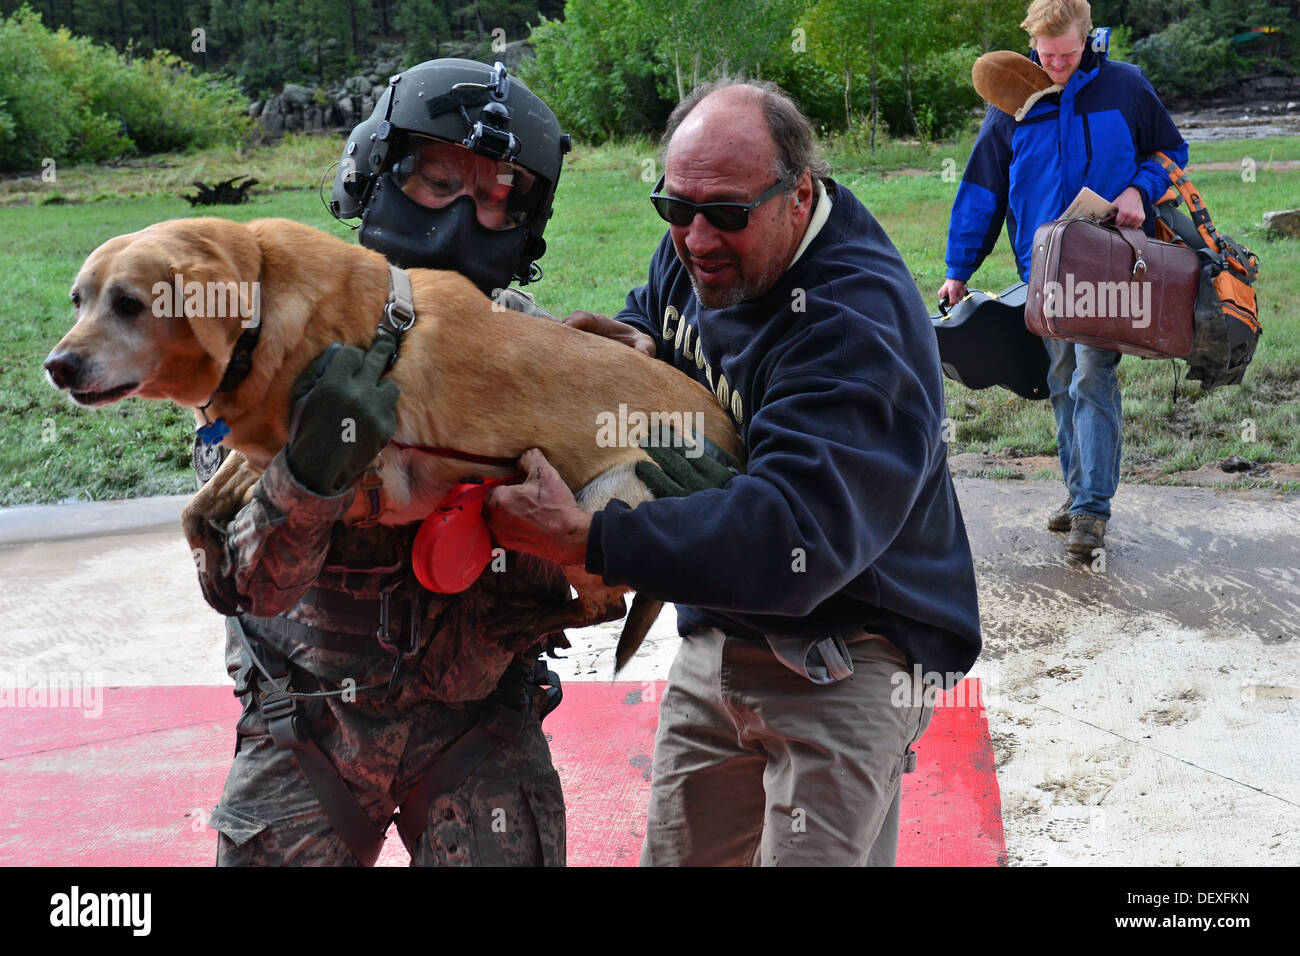 U.S. Army Sgt. 1st Class Keith Bart, a UH-60 Black Hawk helicopter crew chief with Charlie Company, 2nd General Support Aviation Battalion, 4th Aviation Regiment, 4th Combat Aviation Brigade, 4th Infantry Division, carries an animal to safety during flood - Stock Image